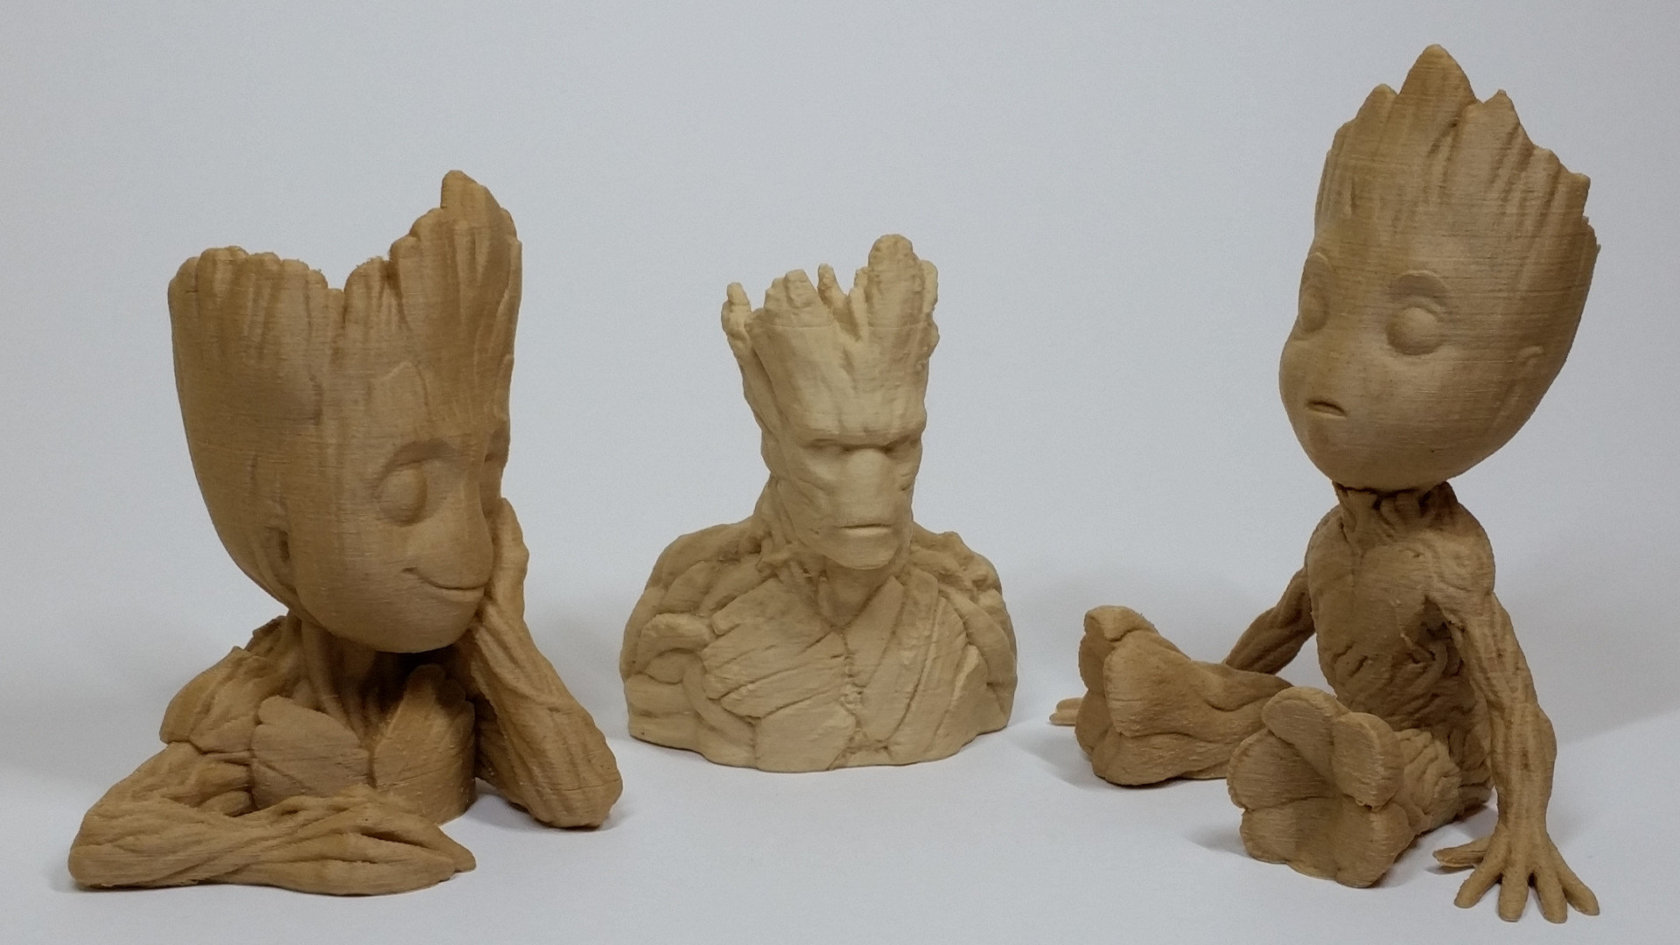 Groot 3D Print Models to Make Your Day